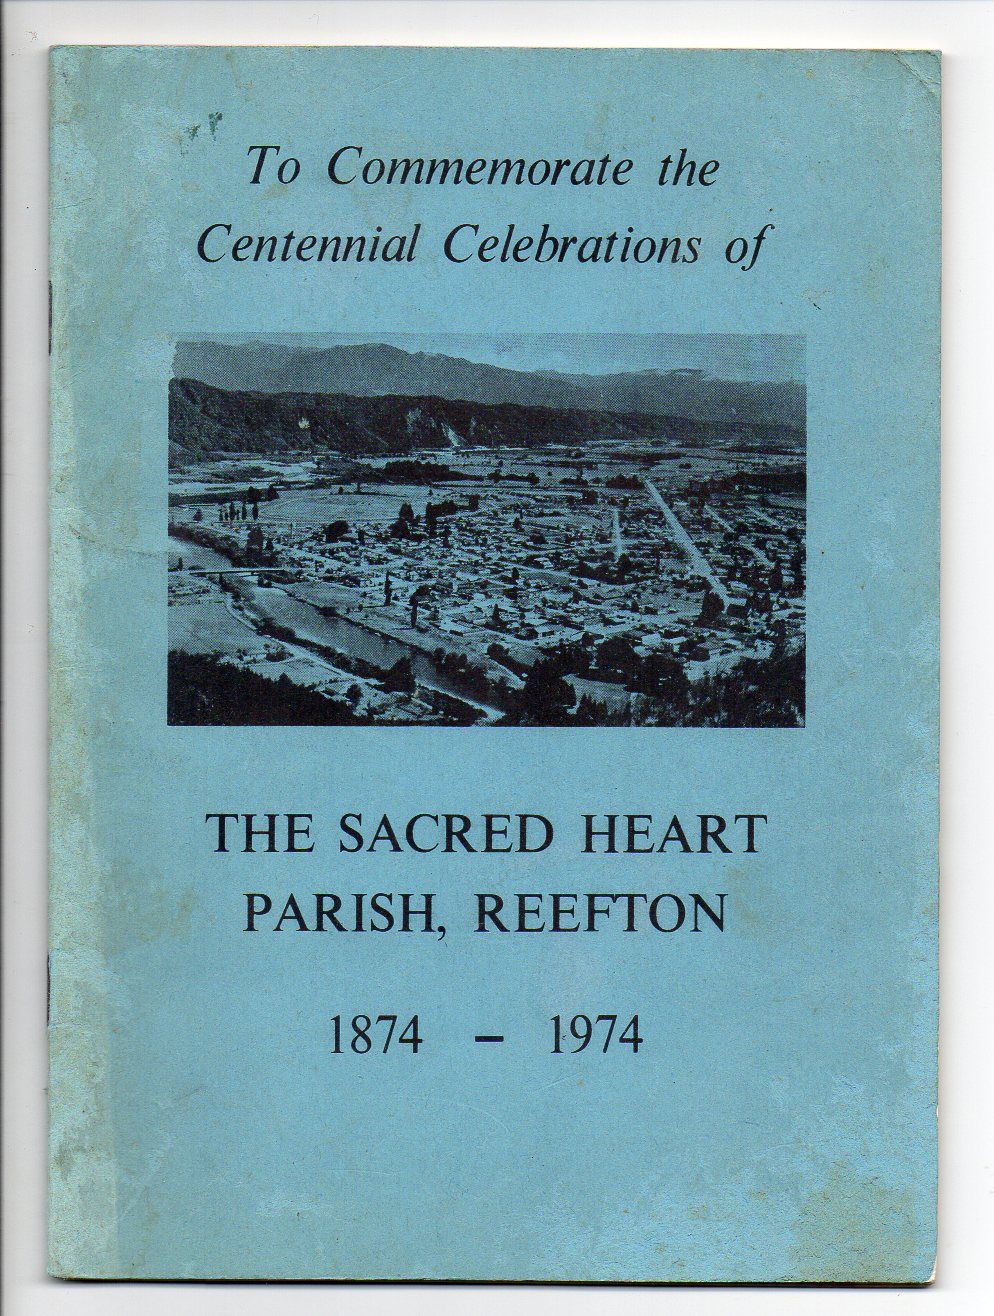 Image for One Hundred Years / To Commemorate the Centennial Celebrations of The Sacred Heart Parish, Reefton 1874-1974